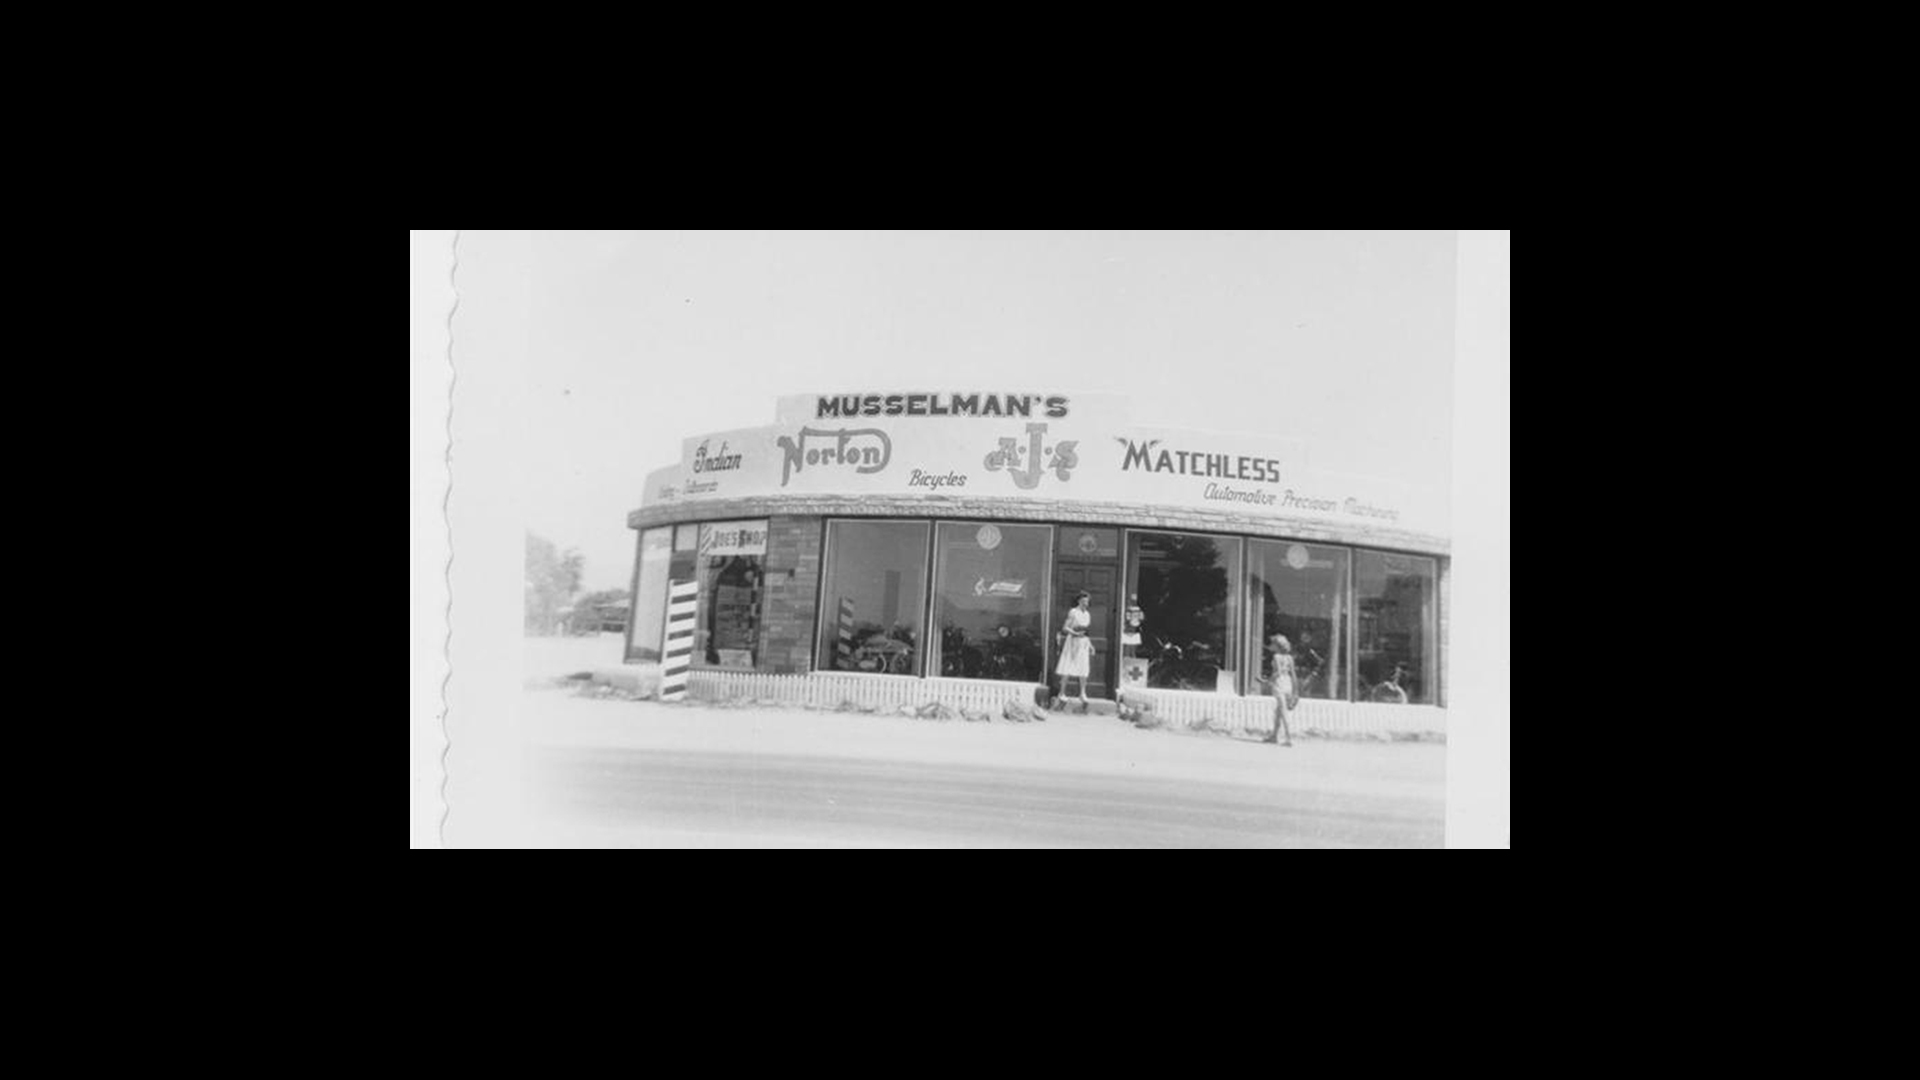 Musselman Honda early 1950s